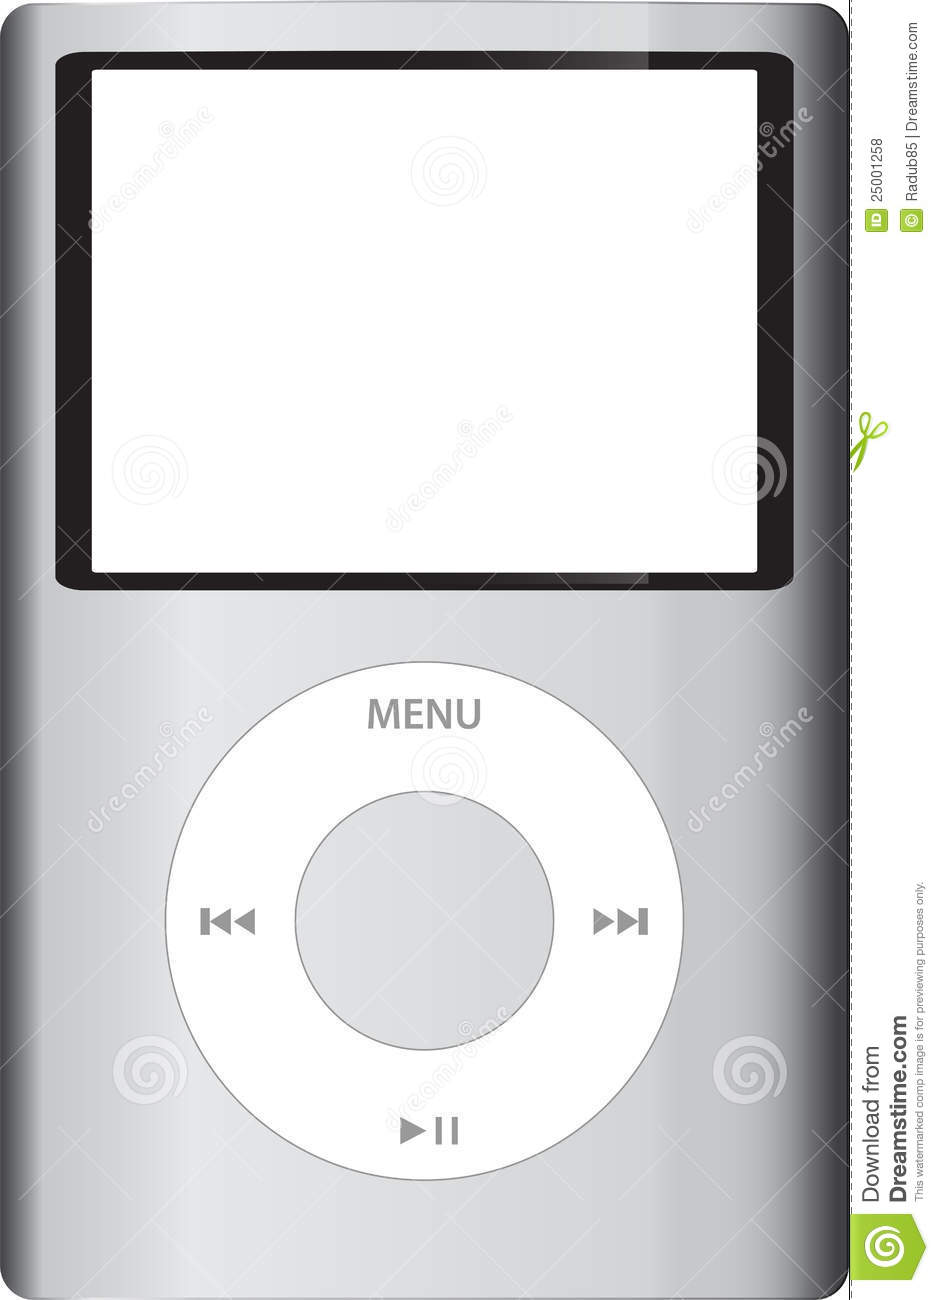 iPod Classic. Download preview